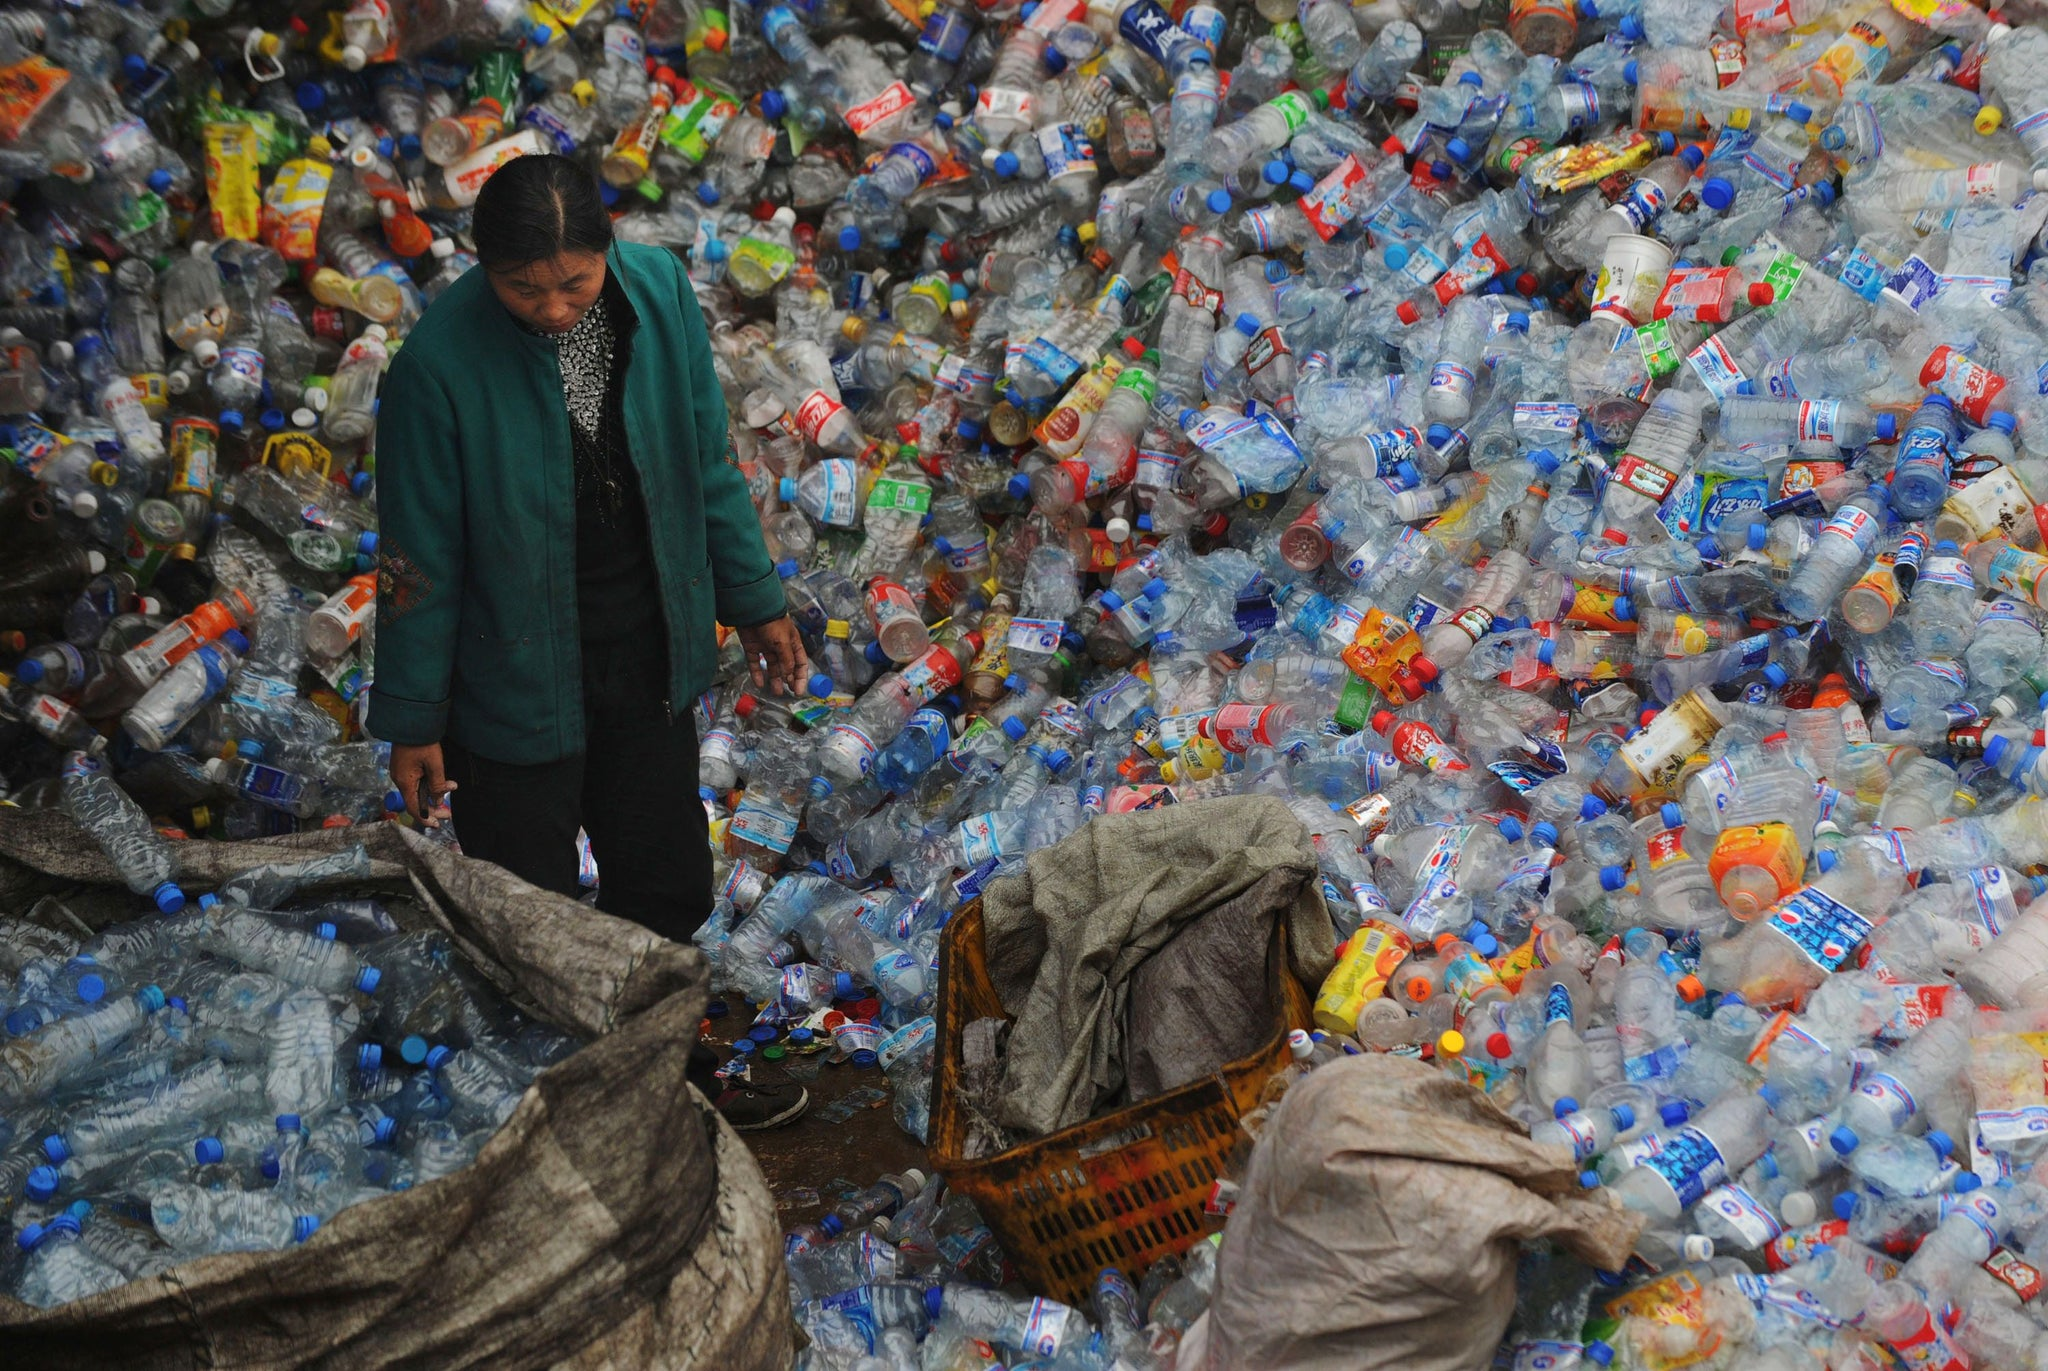 What Happens To The World's Plastic Waste?